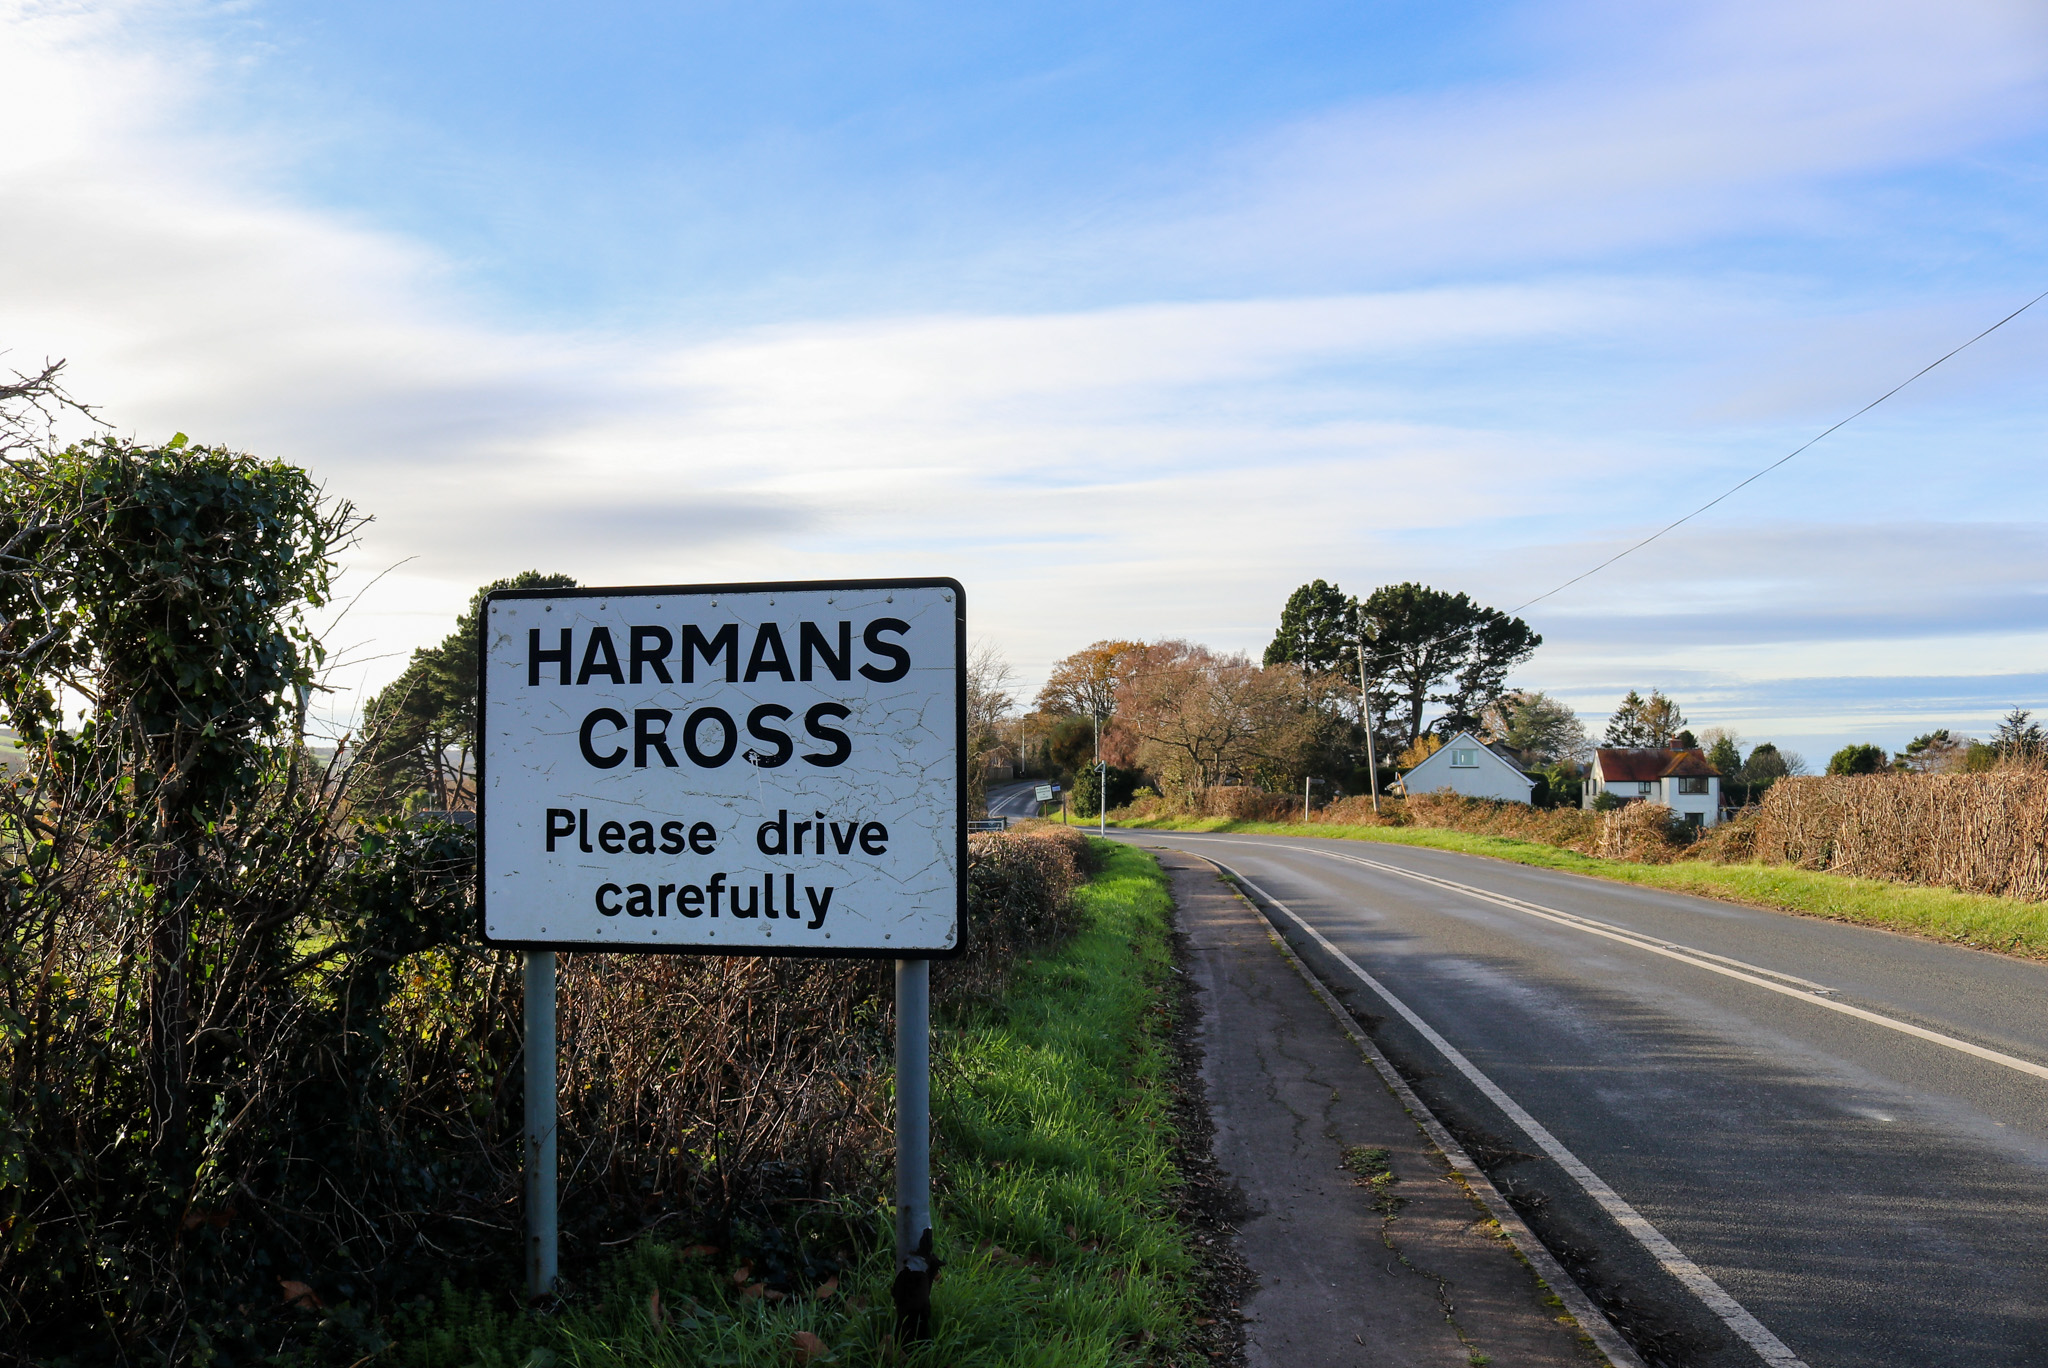 Sign on road at entrance to Harman's Cross